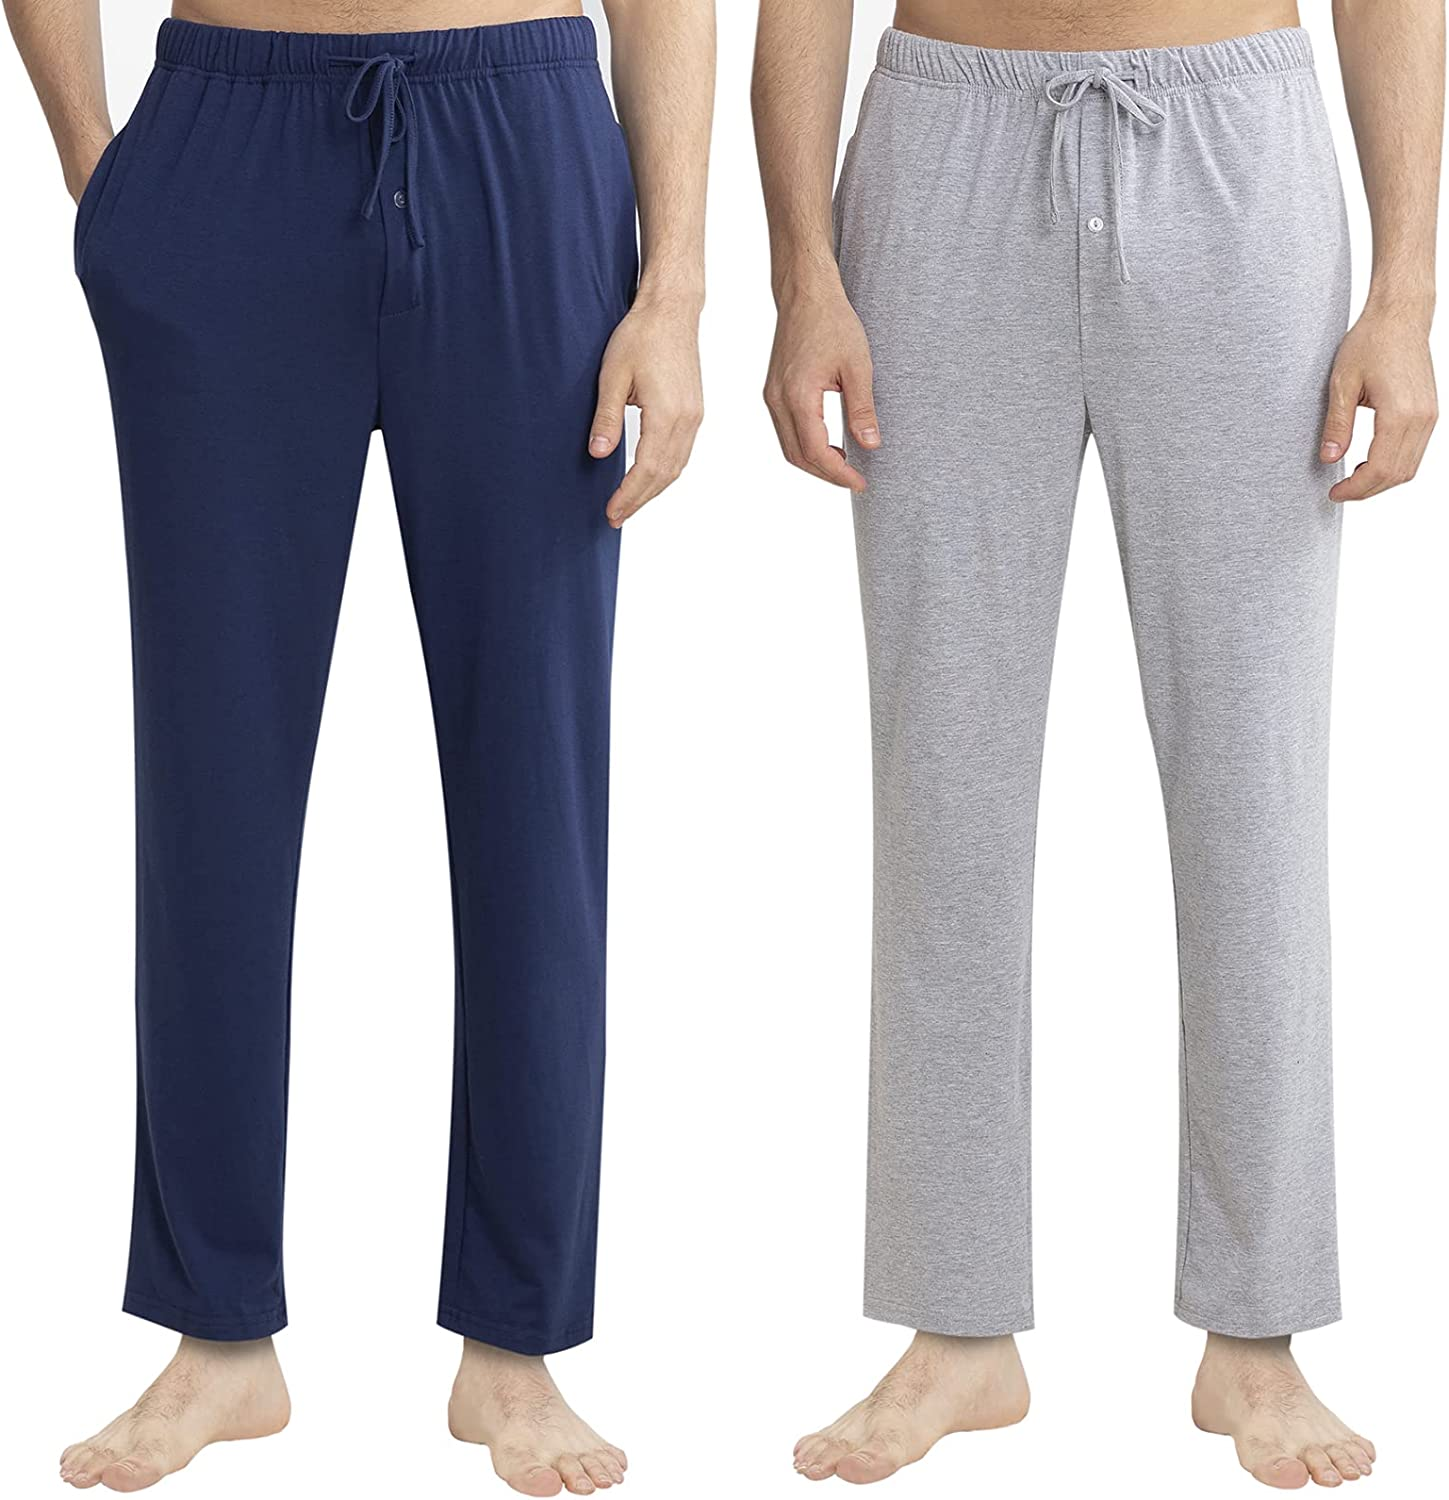 YIMANIE Free shipping anywhere in the nation Men's Pajama Pant Cotton Department store Comfy Sleep Lounge B Pants Soft